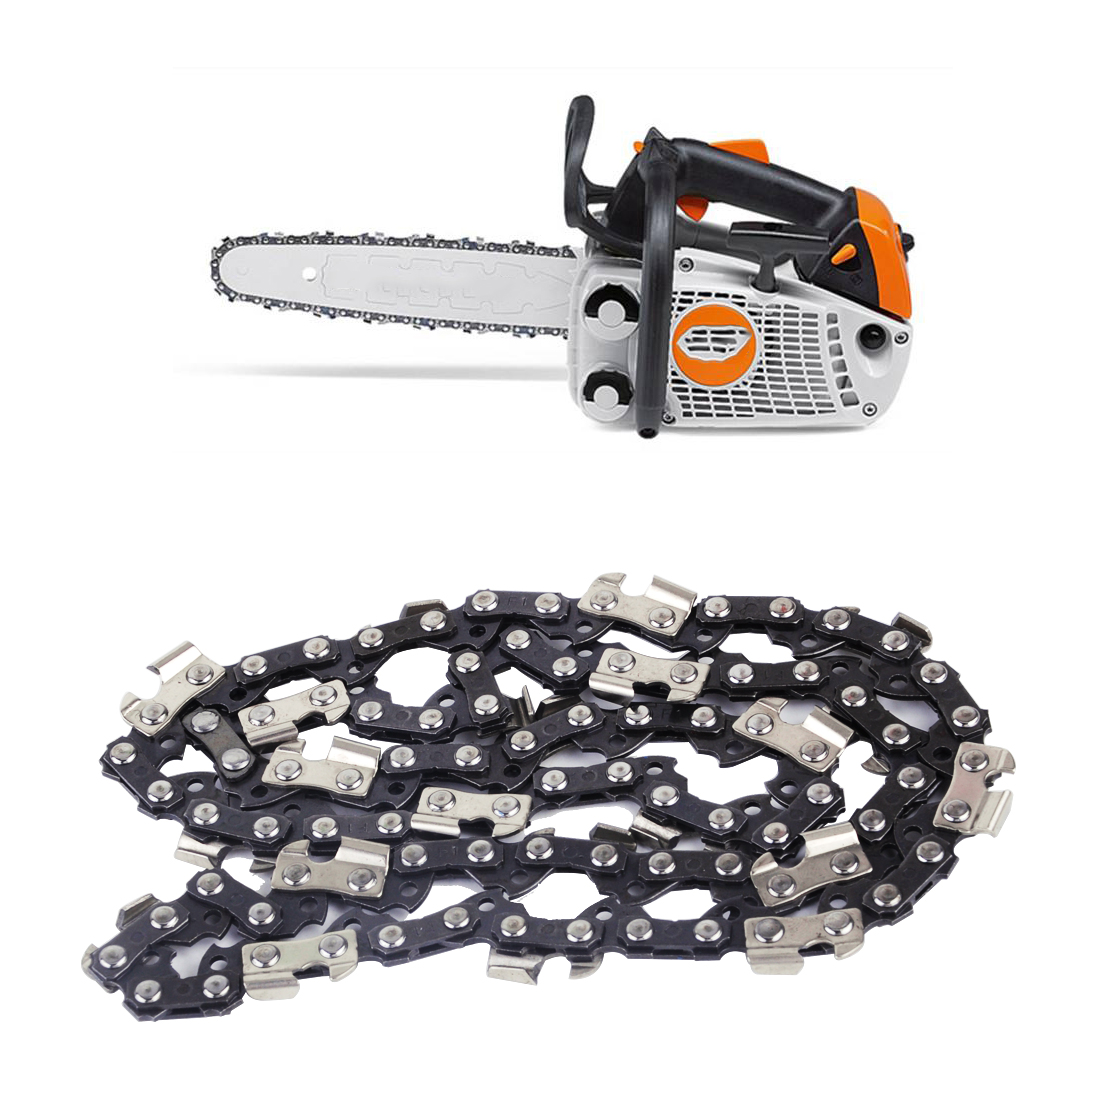 Chainsaw Chain 12 3//8 LP 0.050 Gauge 44DL For Stihl MS170 MS180 MS181 MS190